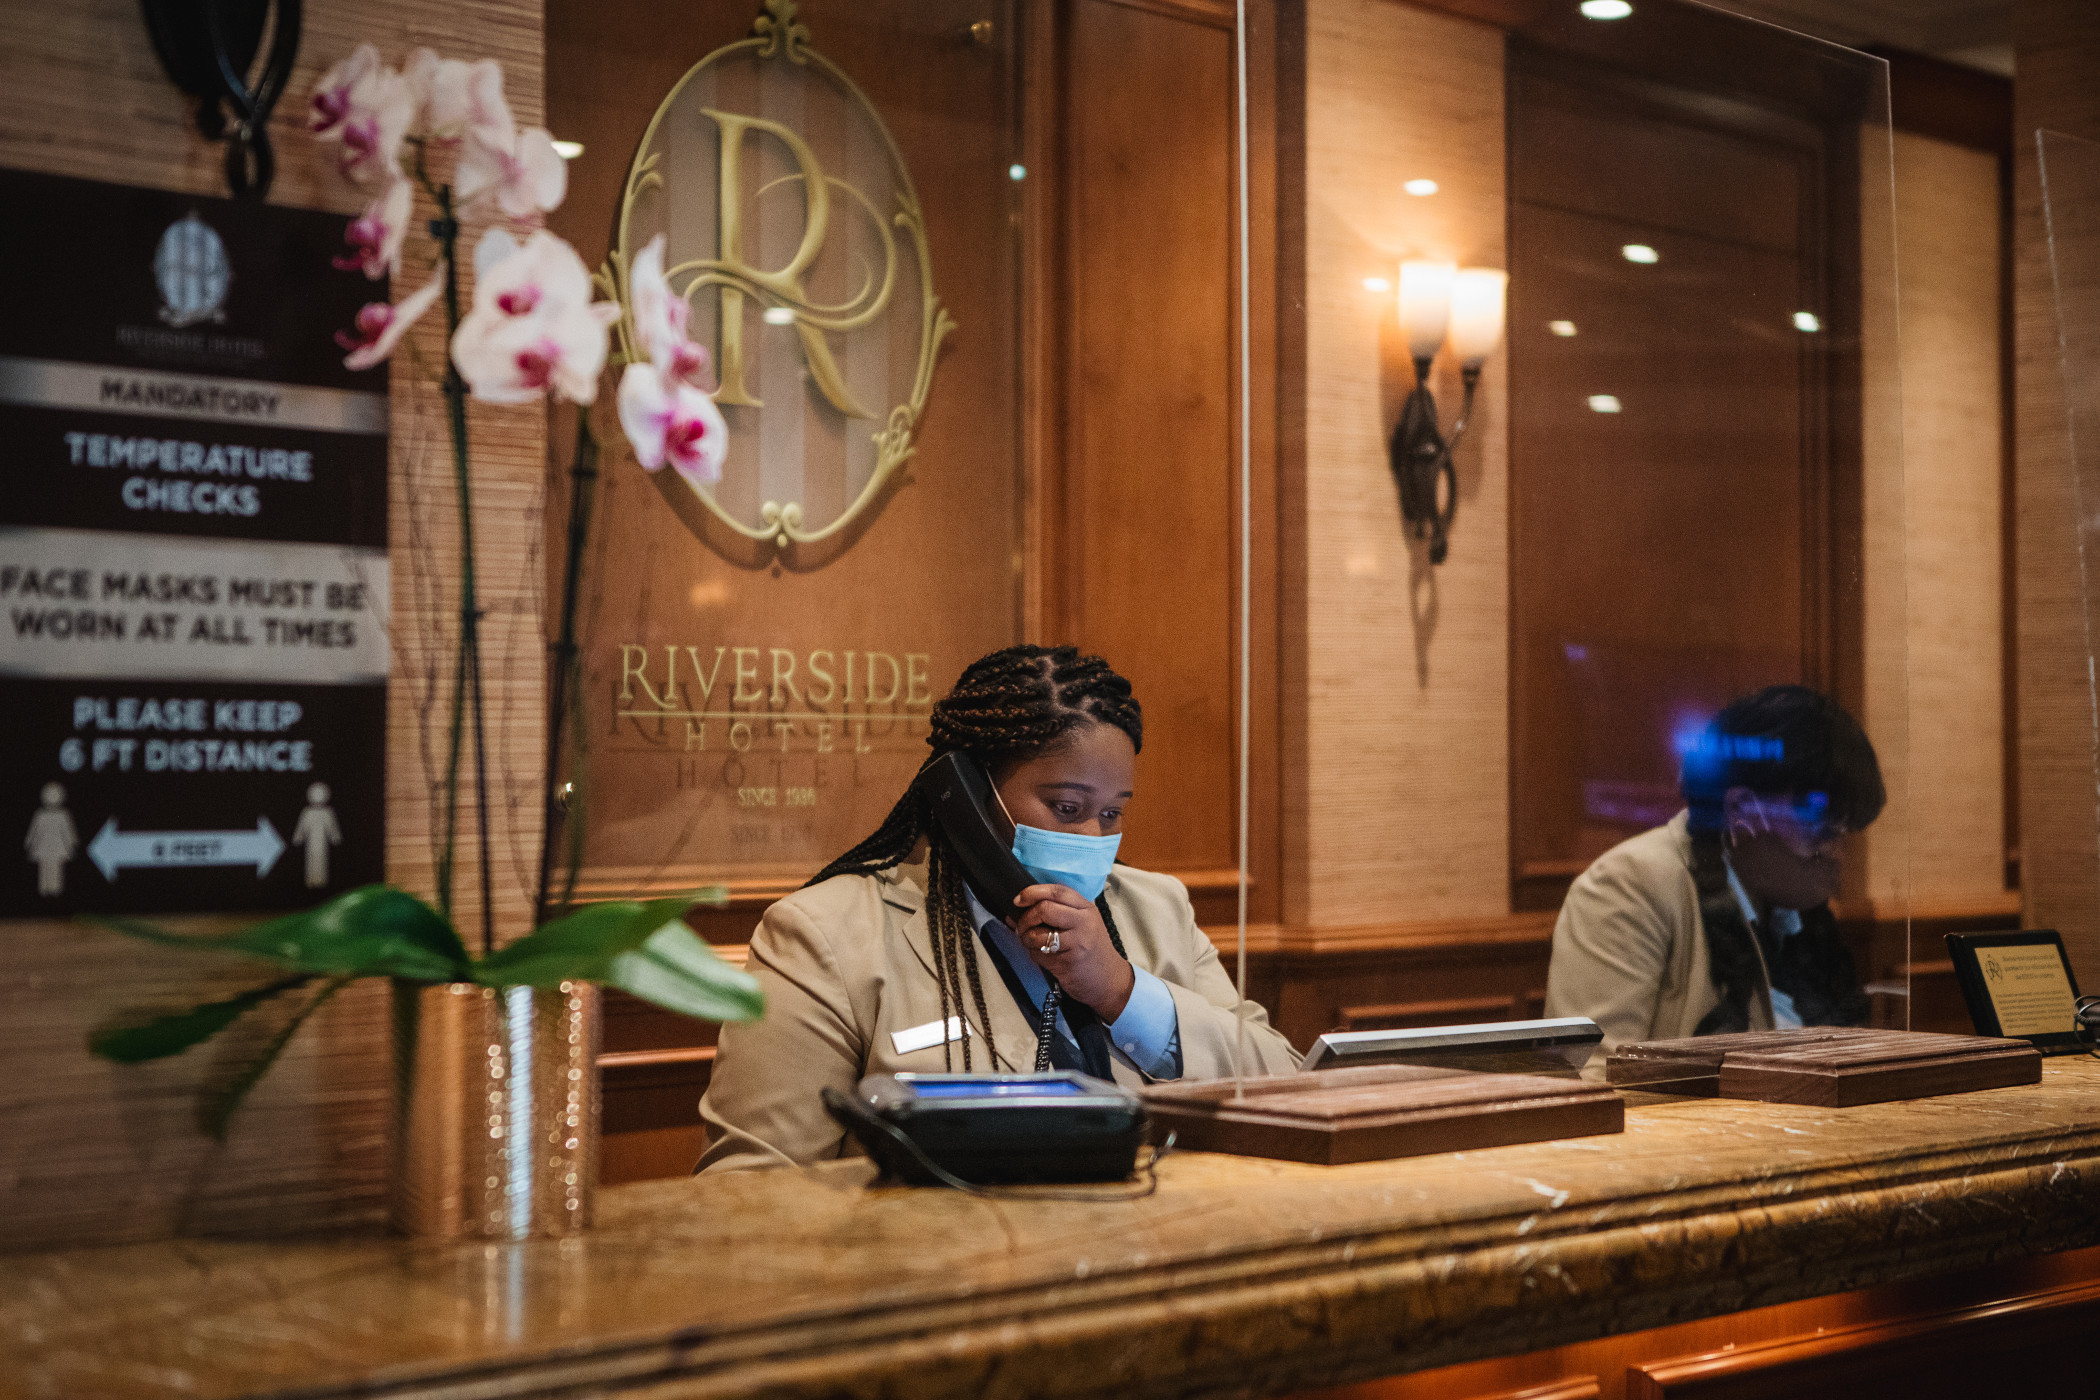 Hotel rates surge as summer leisure travel remains high. (Getty Images)